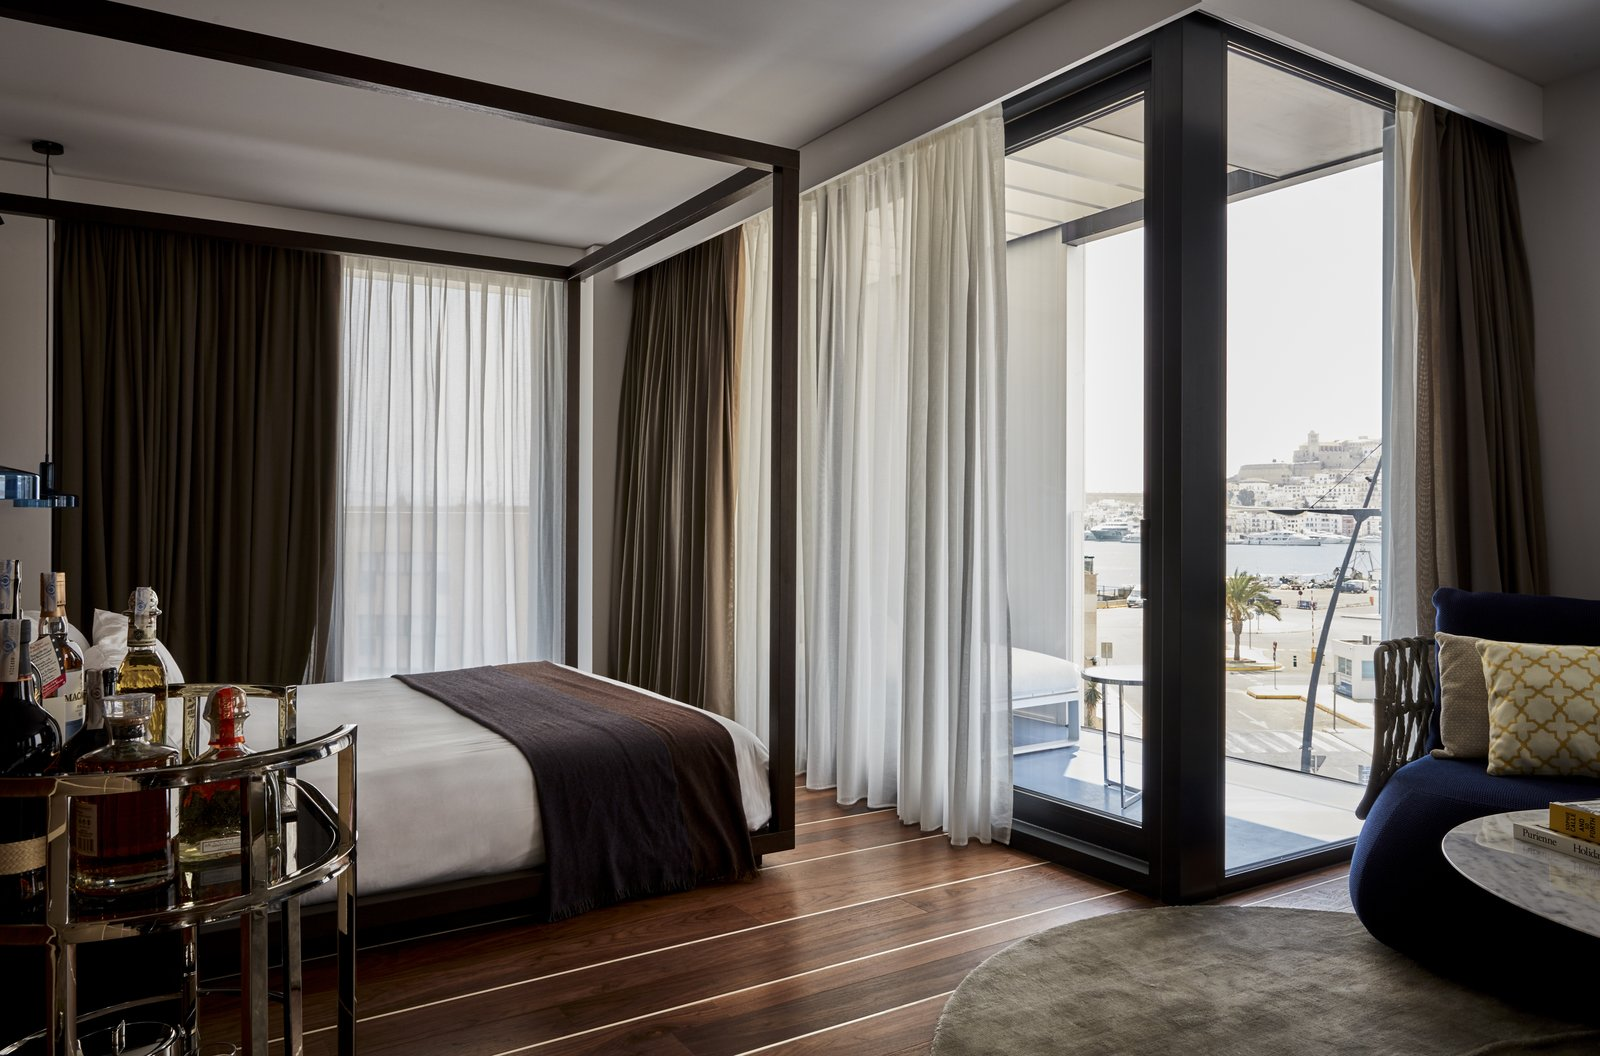 Bedroom, Bed, and Dark Hardwood Floor  Photo 5 of 11 in A New Hotel That Celebrates Ibiza's Maritime History and Love For Parties